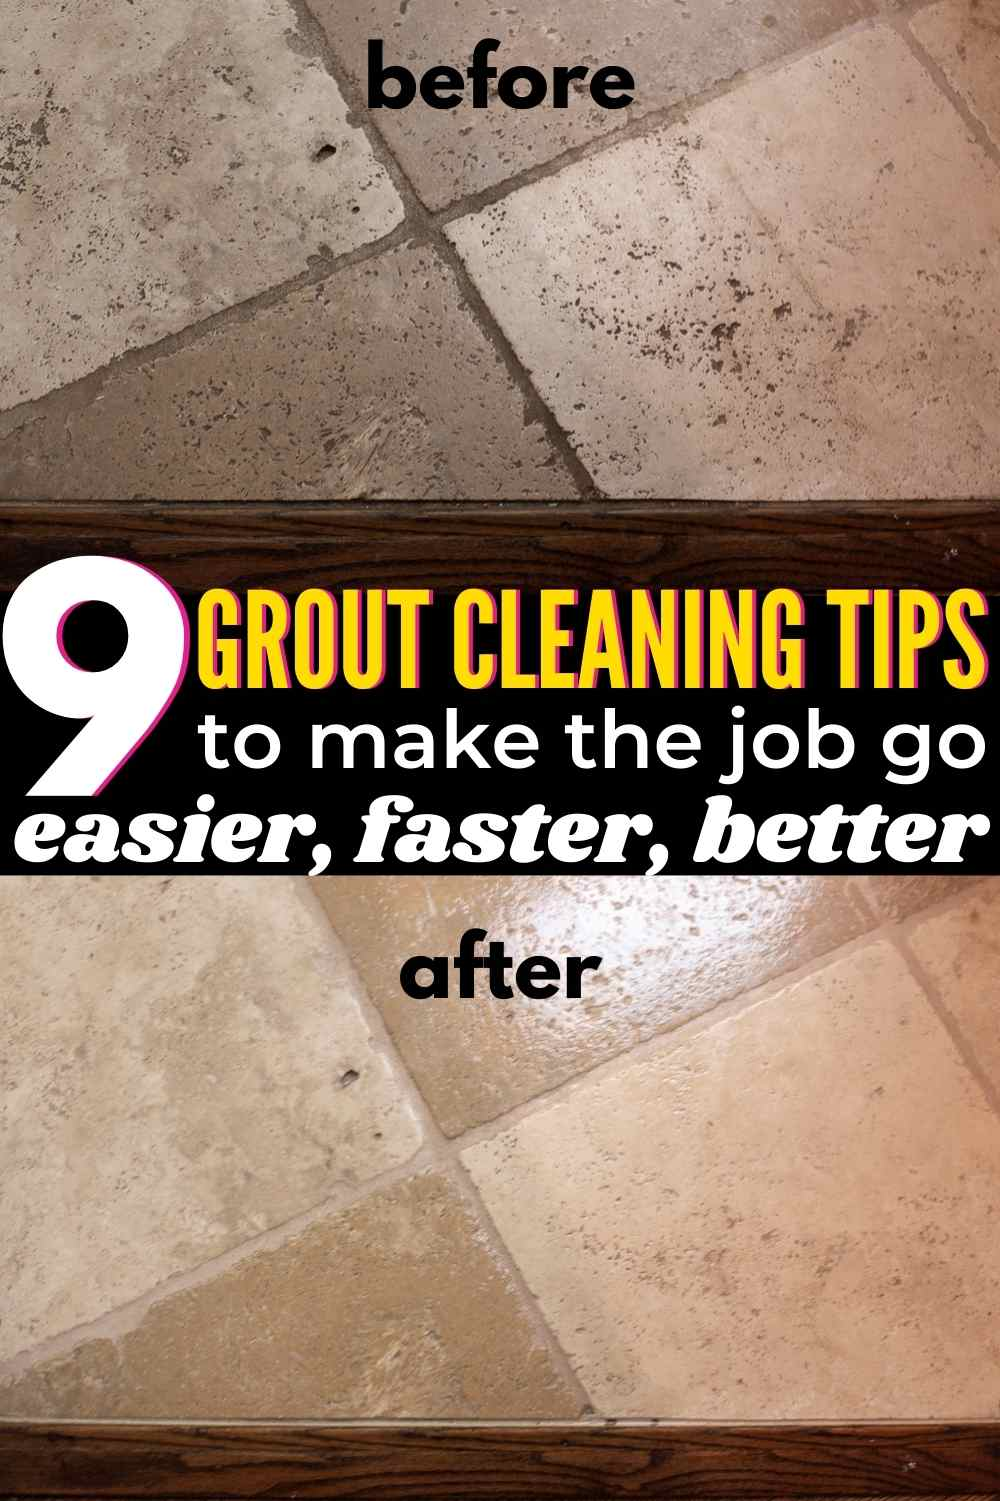 9 grout cleaning tips to make the job go easier, faster better with before and after of dirty grout that has been cleaned